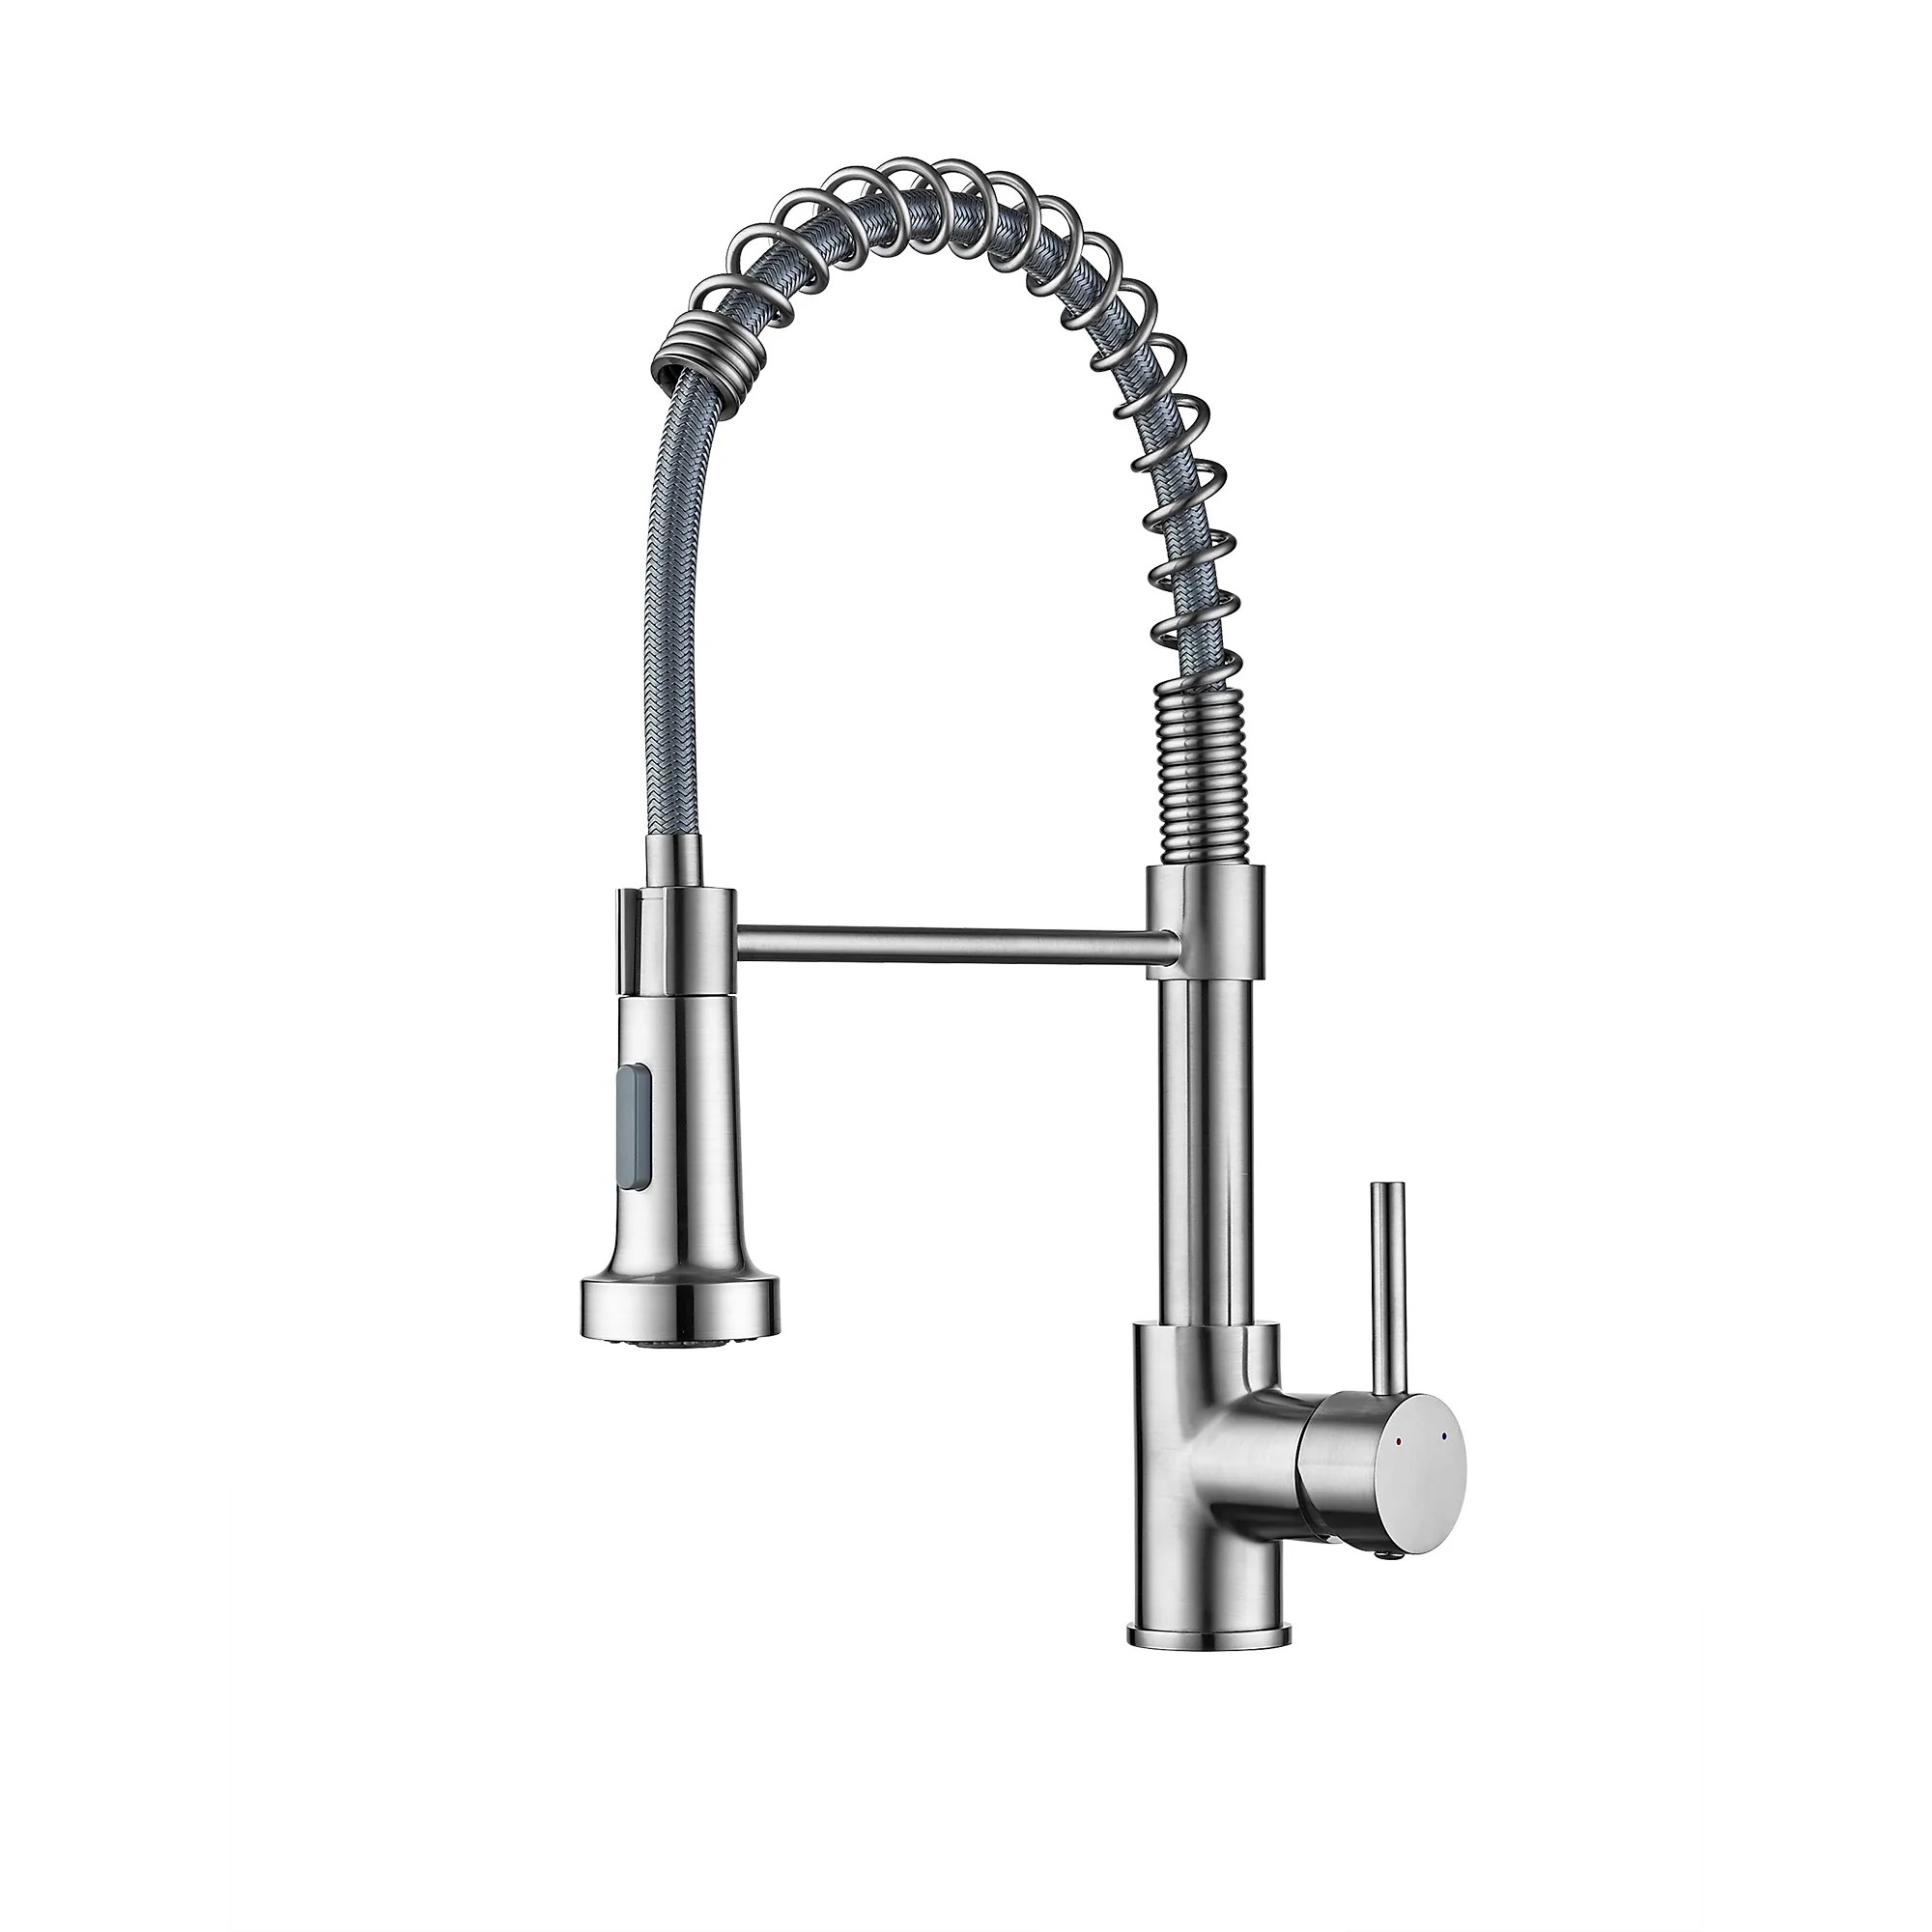 ravinte commercial kitchen faucet with sprayer single handle spring spout faucets pull down sprayer solid brass kitchen sink faucet farmhouse kitchen